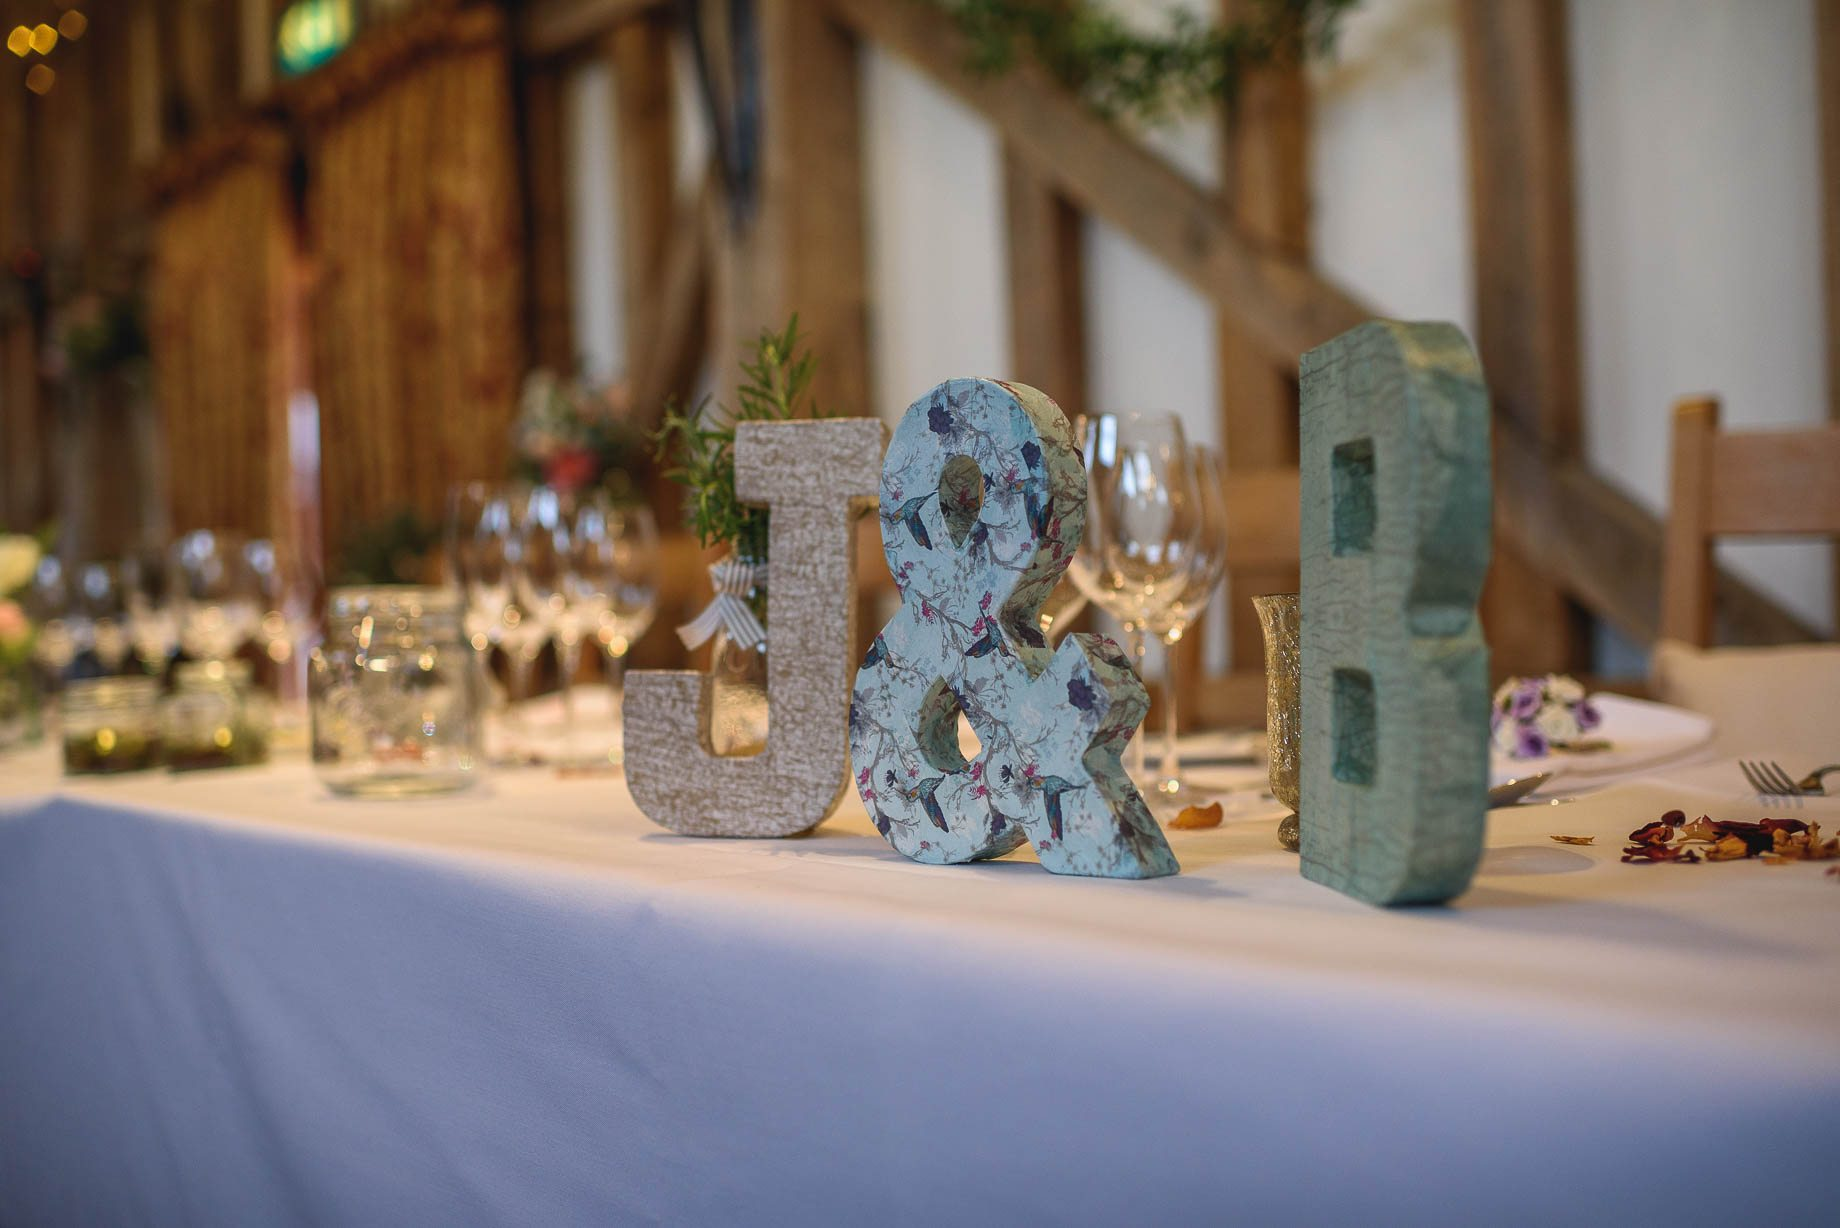 Surrey Wedding Photography by Guy Collier - Becca and James (101 of 145)